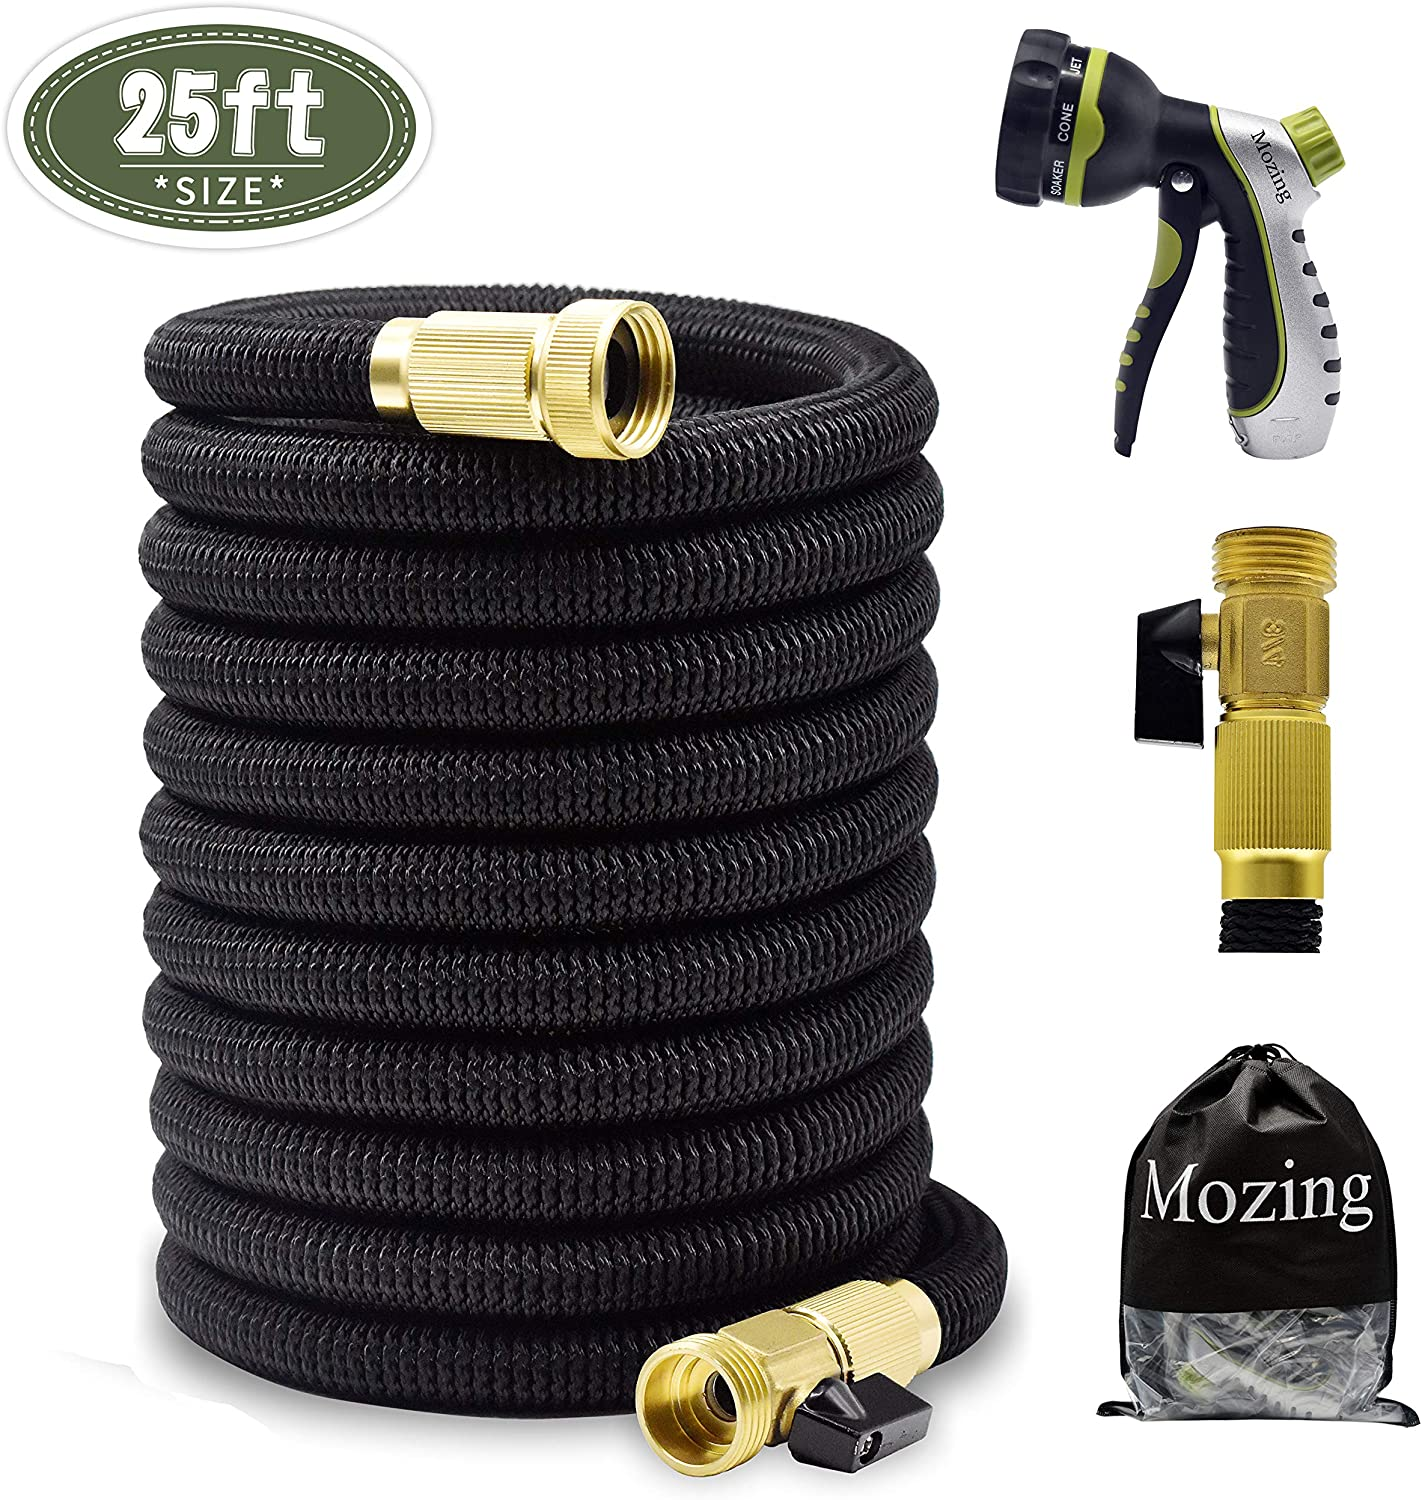 Mozing 25ft Expandable Garden Hose - Upgraded Water Hose with & 3/4 Solid Brass Fittings & Premium 8 Functions Hose Nozzle